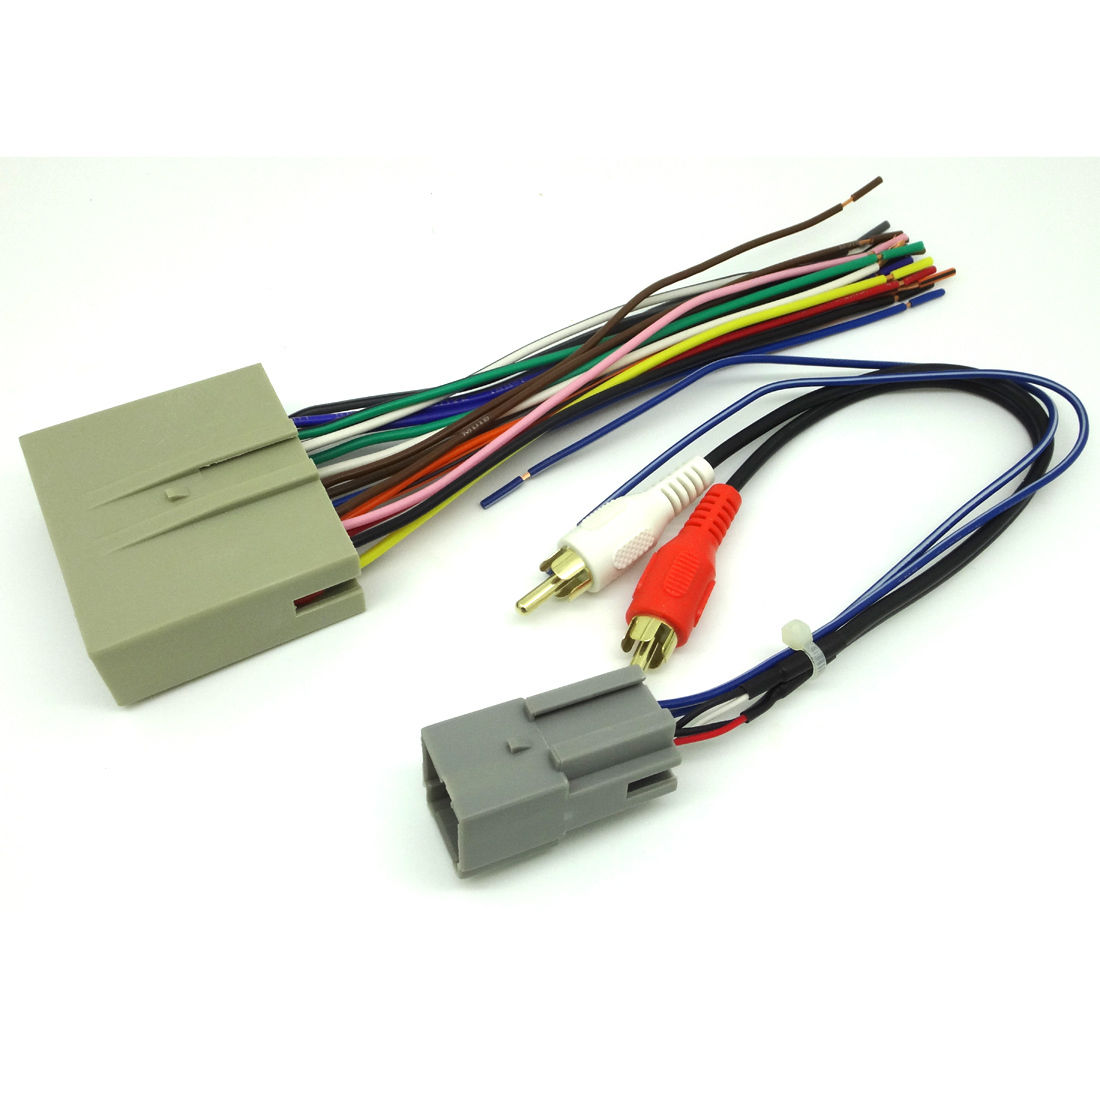 Details about FORD CAR STEREO CD PLAYER WIRING HARNESS WIRE AFTERMARKET on